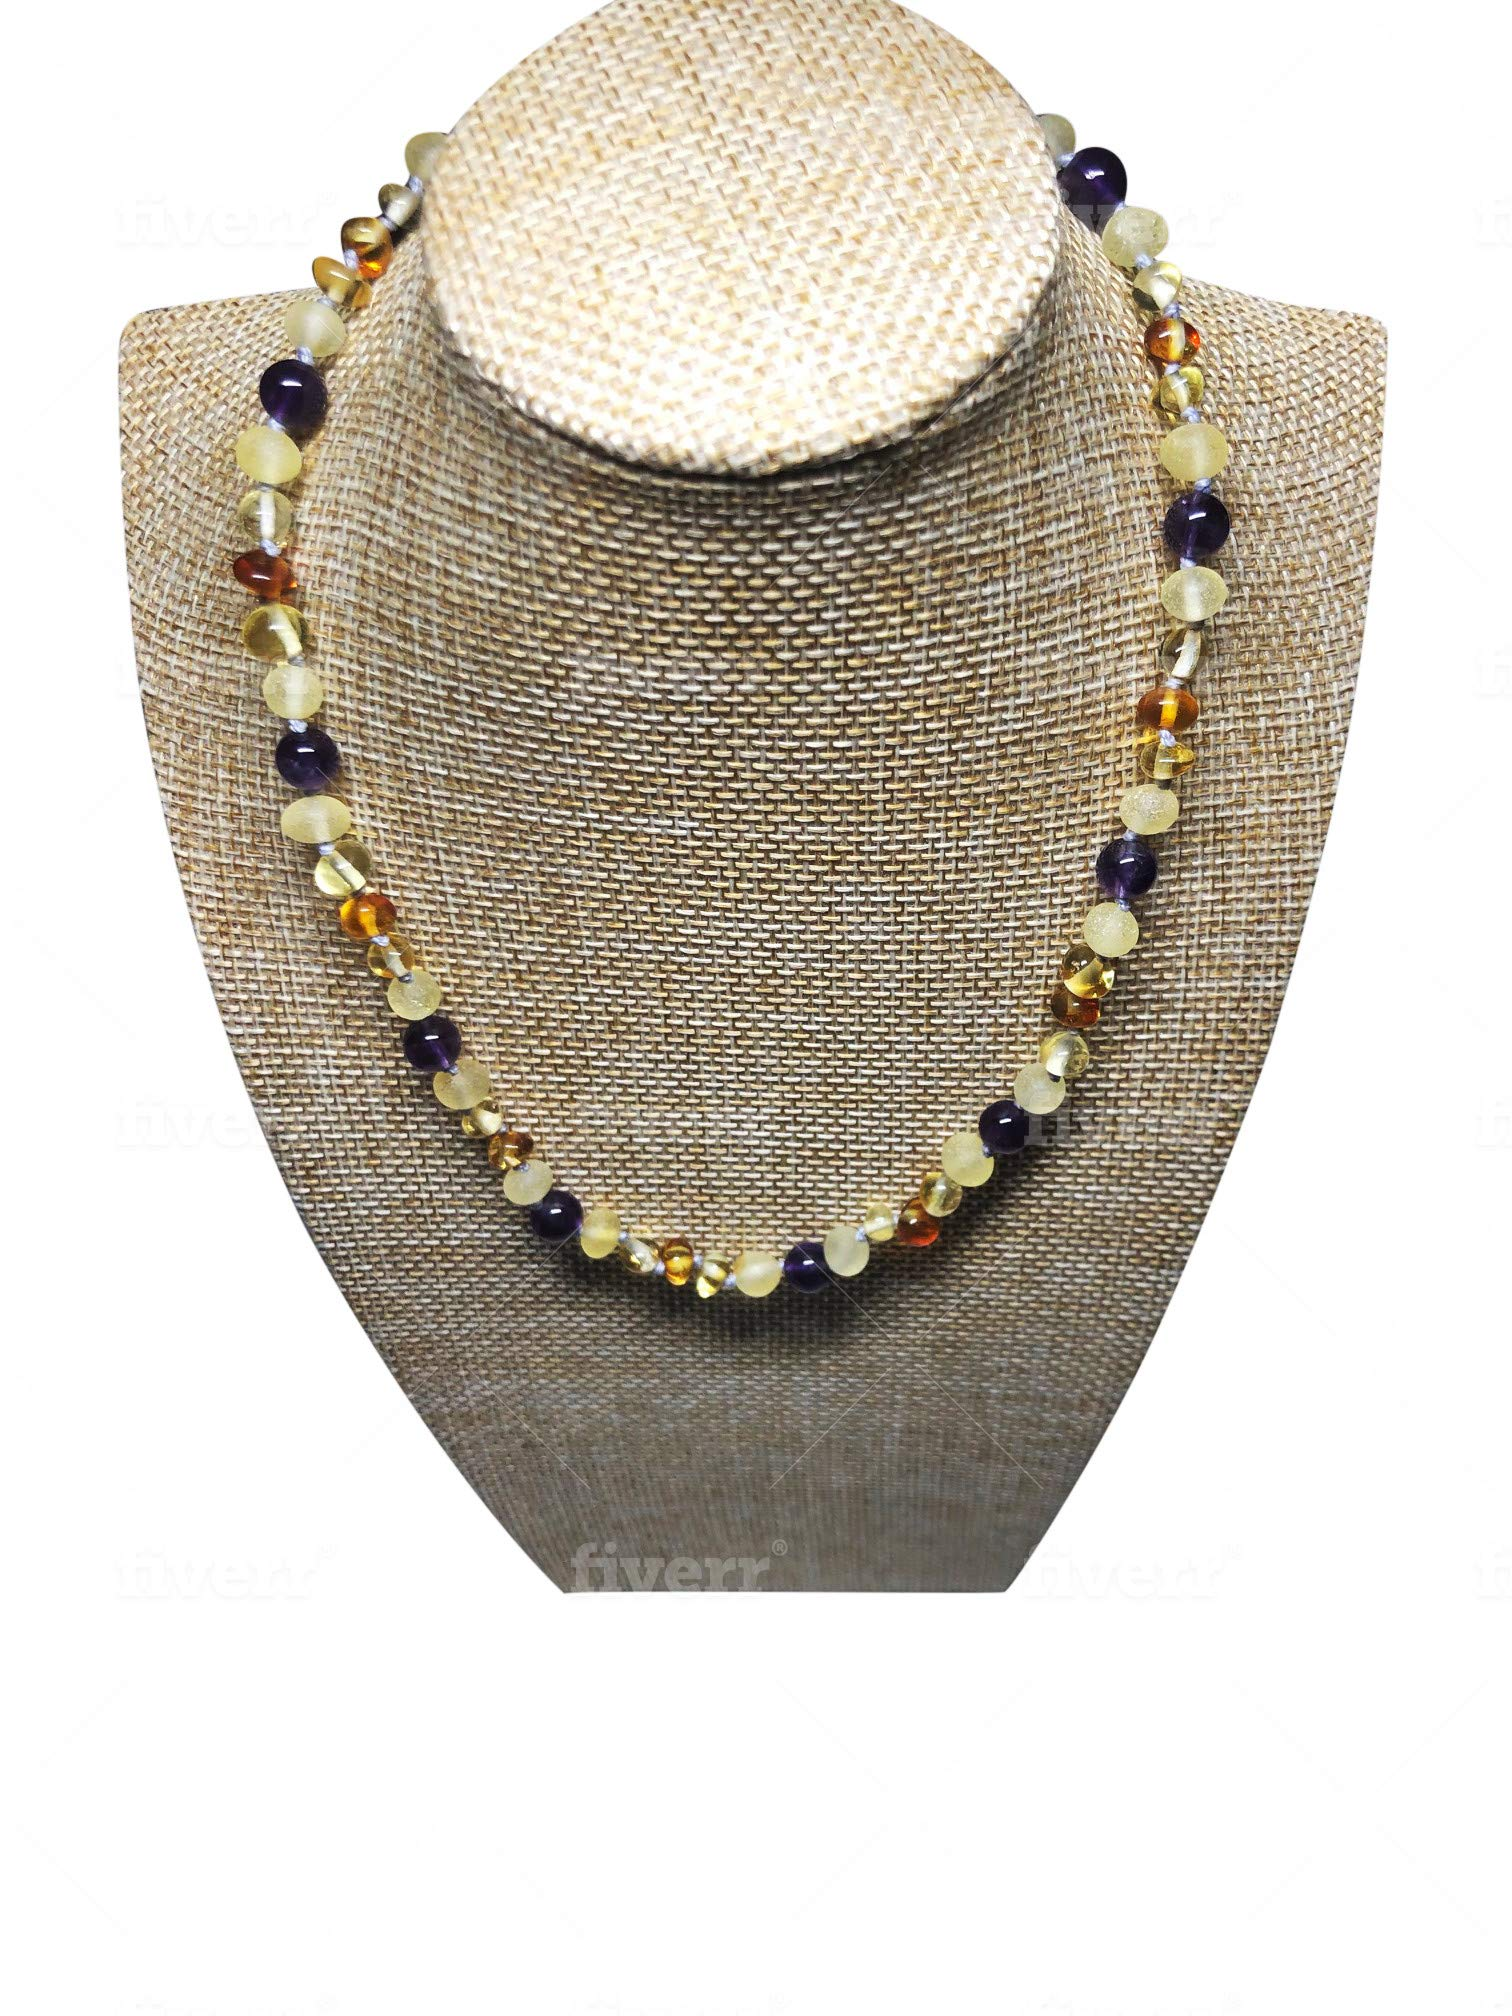 Baltic Amber Necklace For Kids- 16 inch- Immune System Boost- with Certified Amethyst by Umai